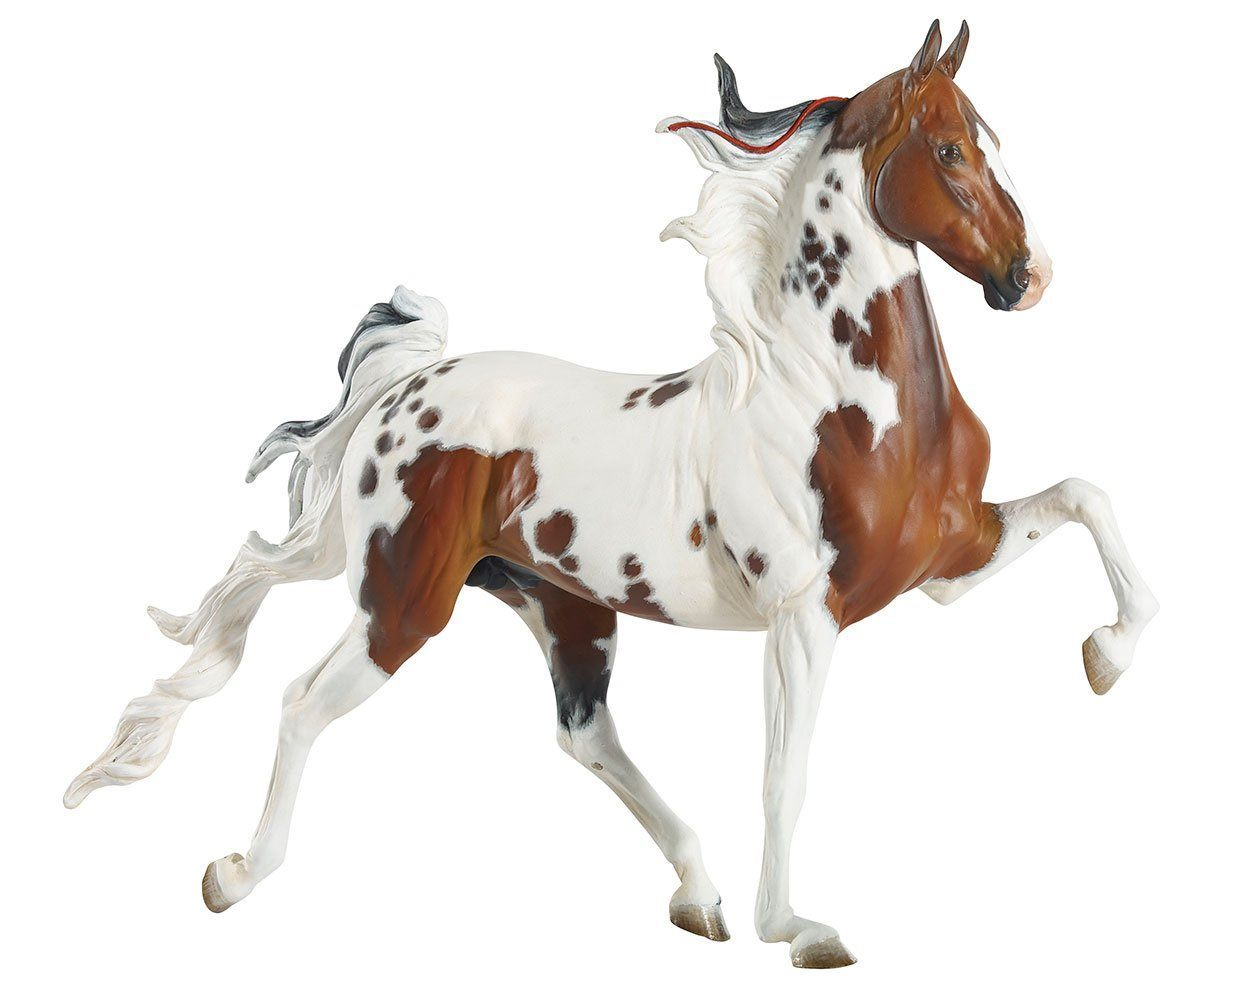 Arnold True Value has Breyer horses